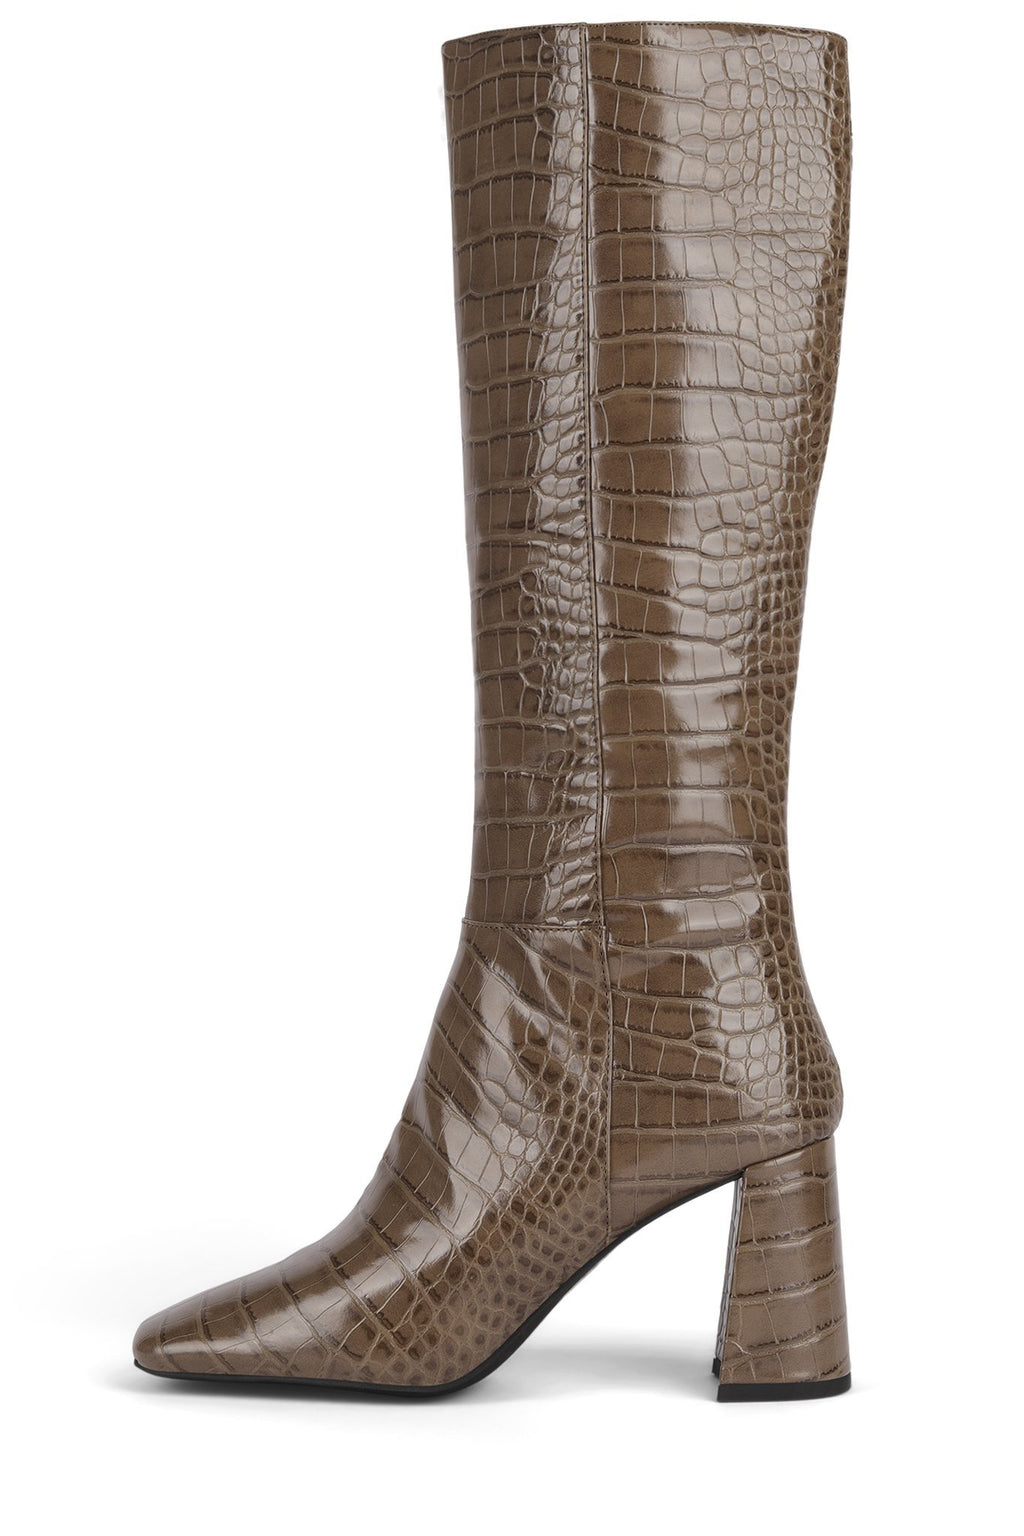 PATTI-KH Knee-High Boot YYH Khaki Croco 6